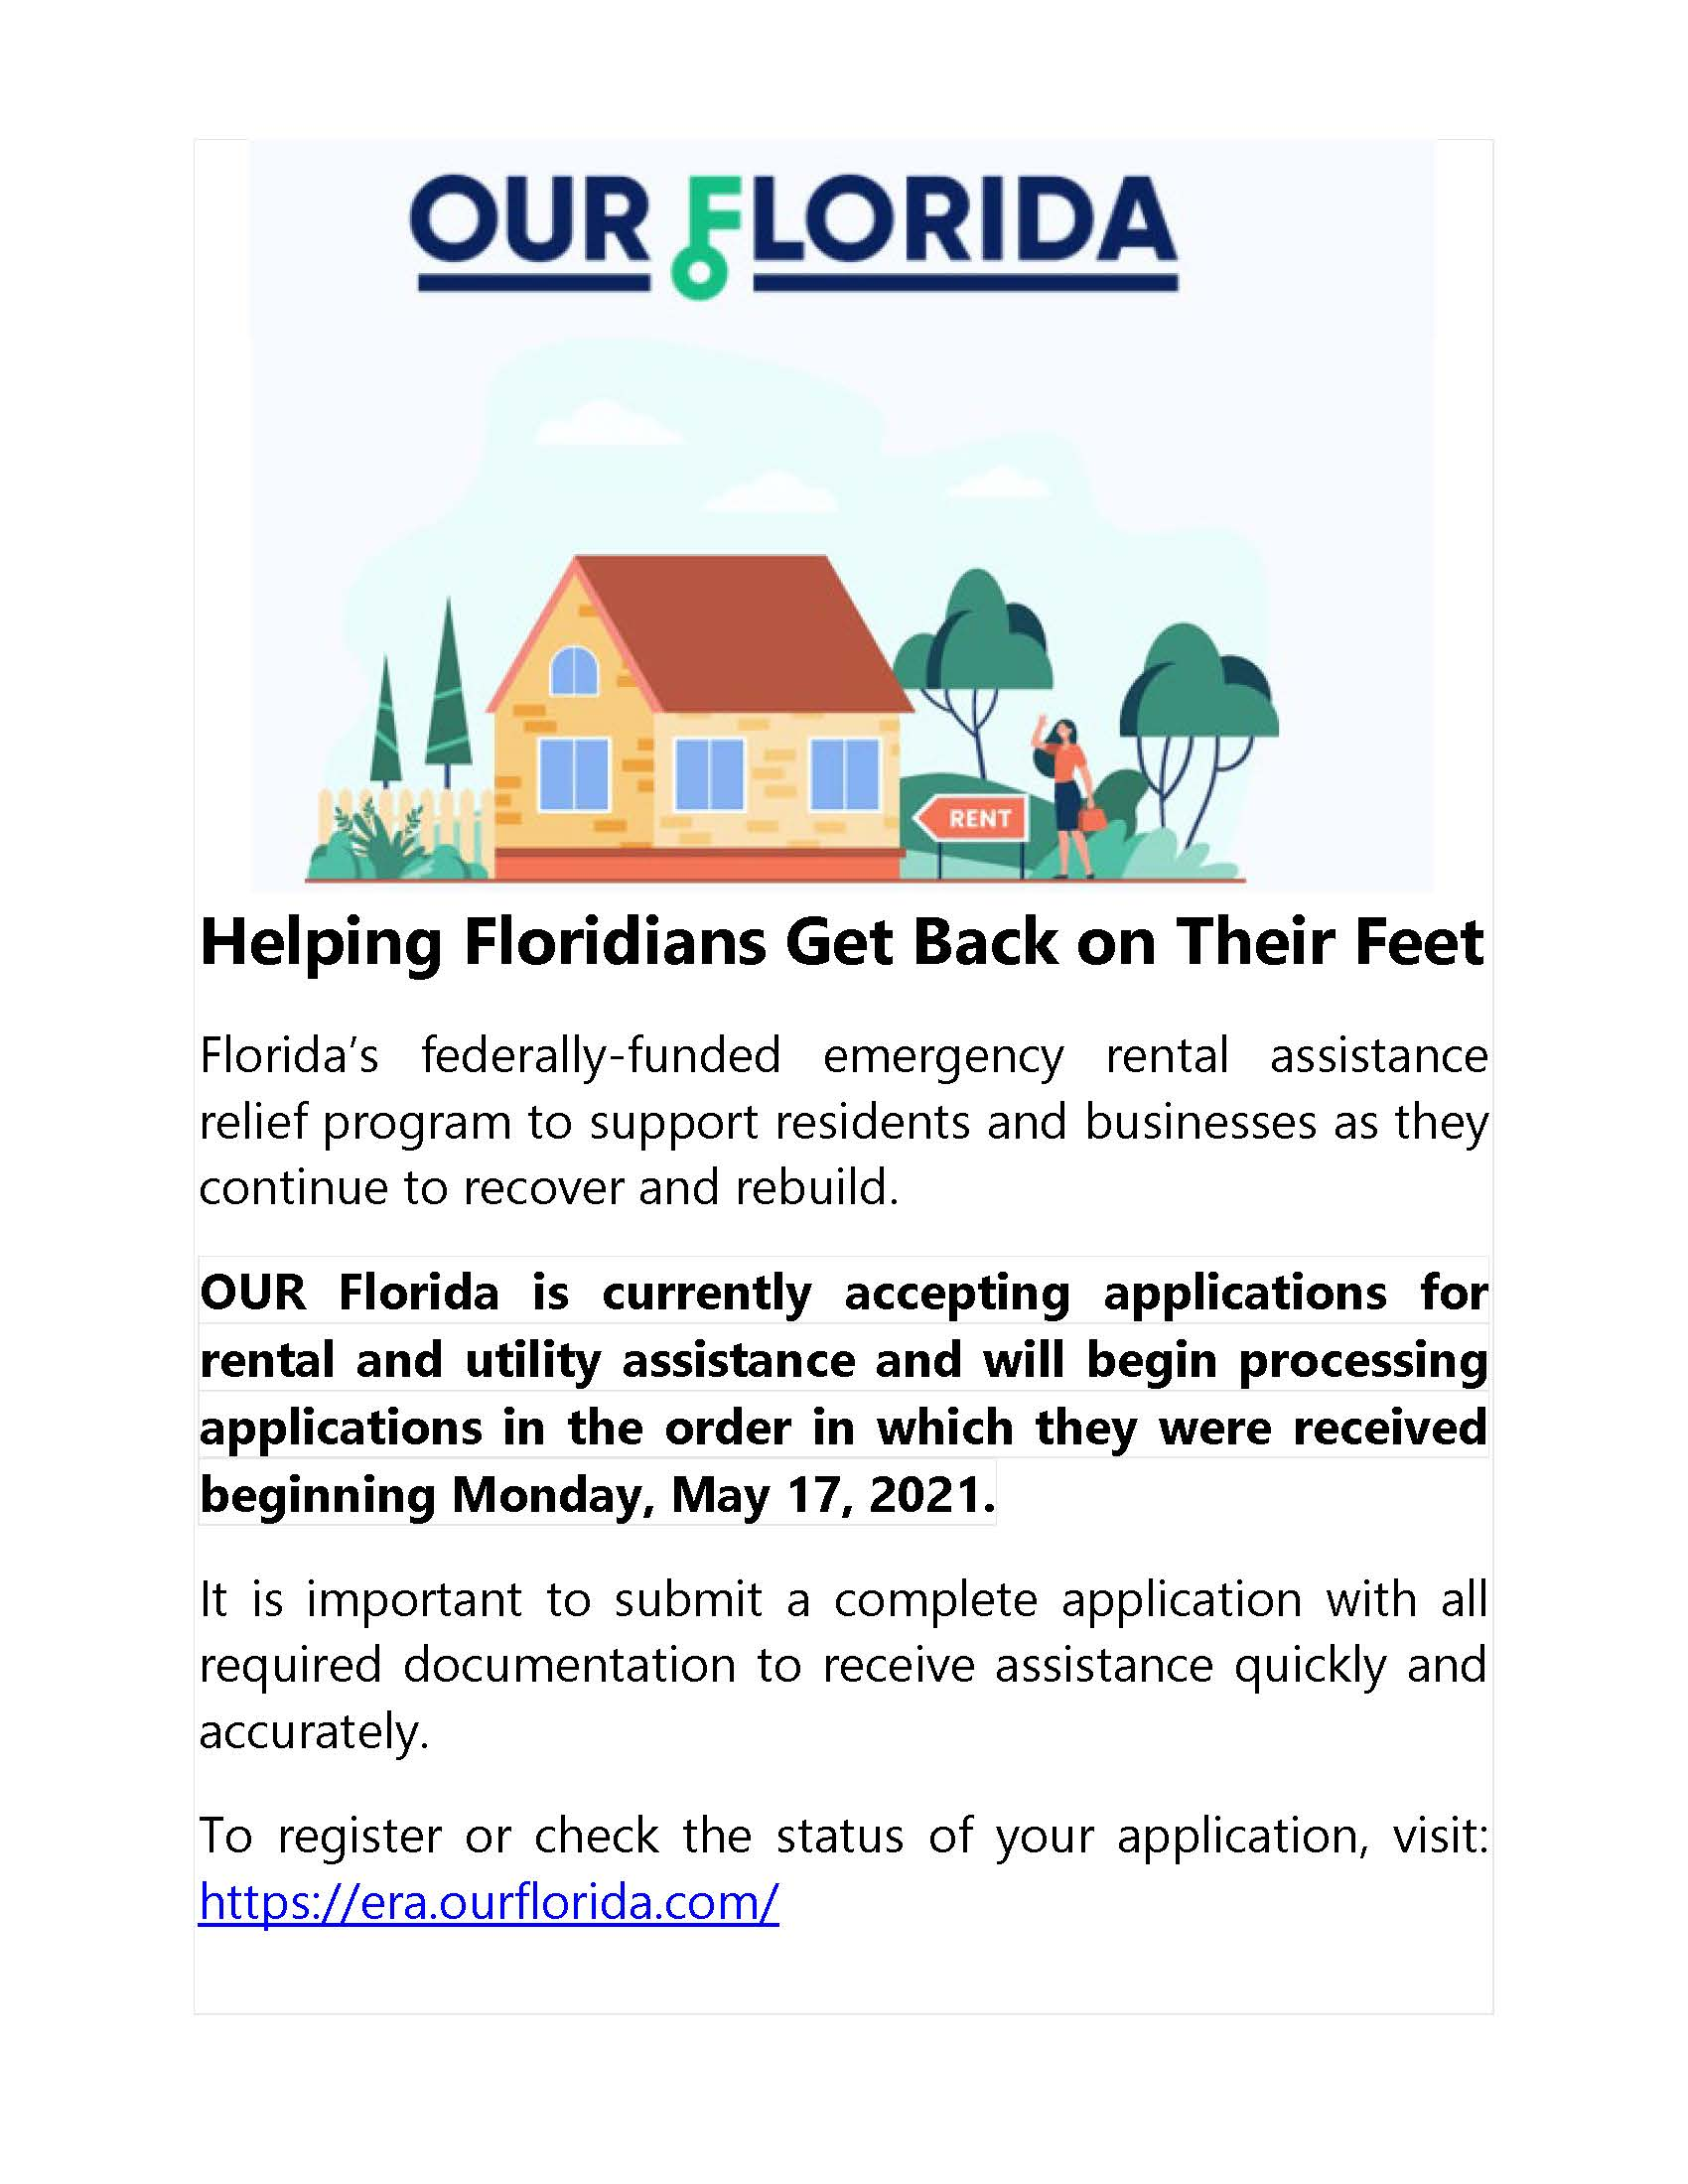 OUR Florida Funding 07072021